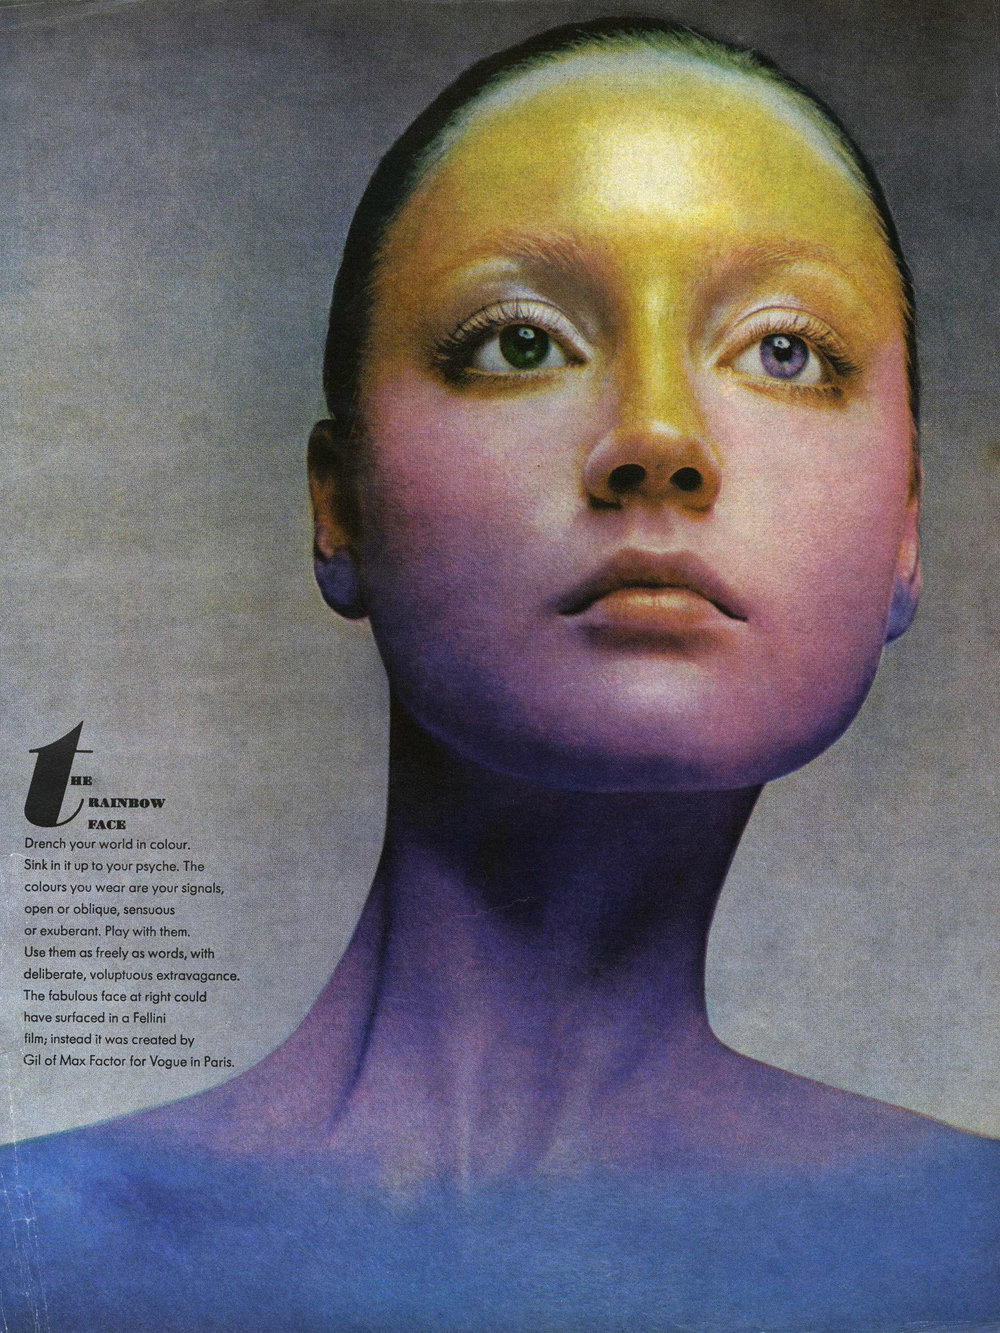 """The Rainbow Face"" photographed by Richard Avedon for Vogue, November 1970."